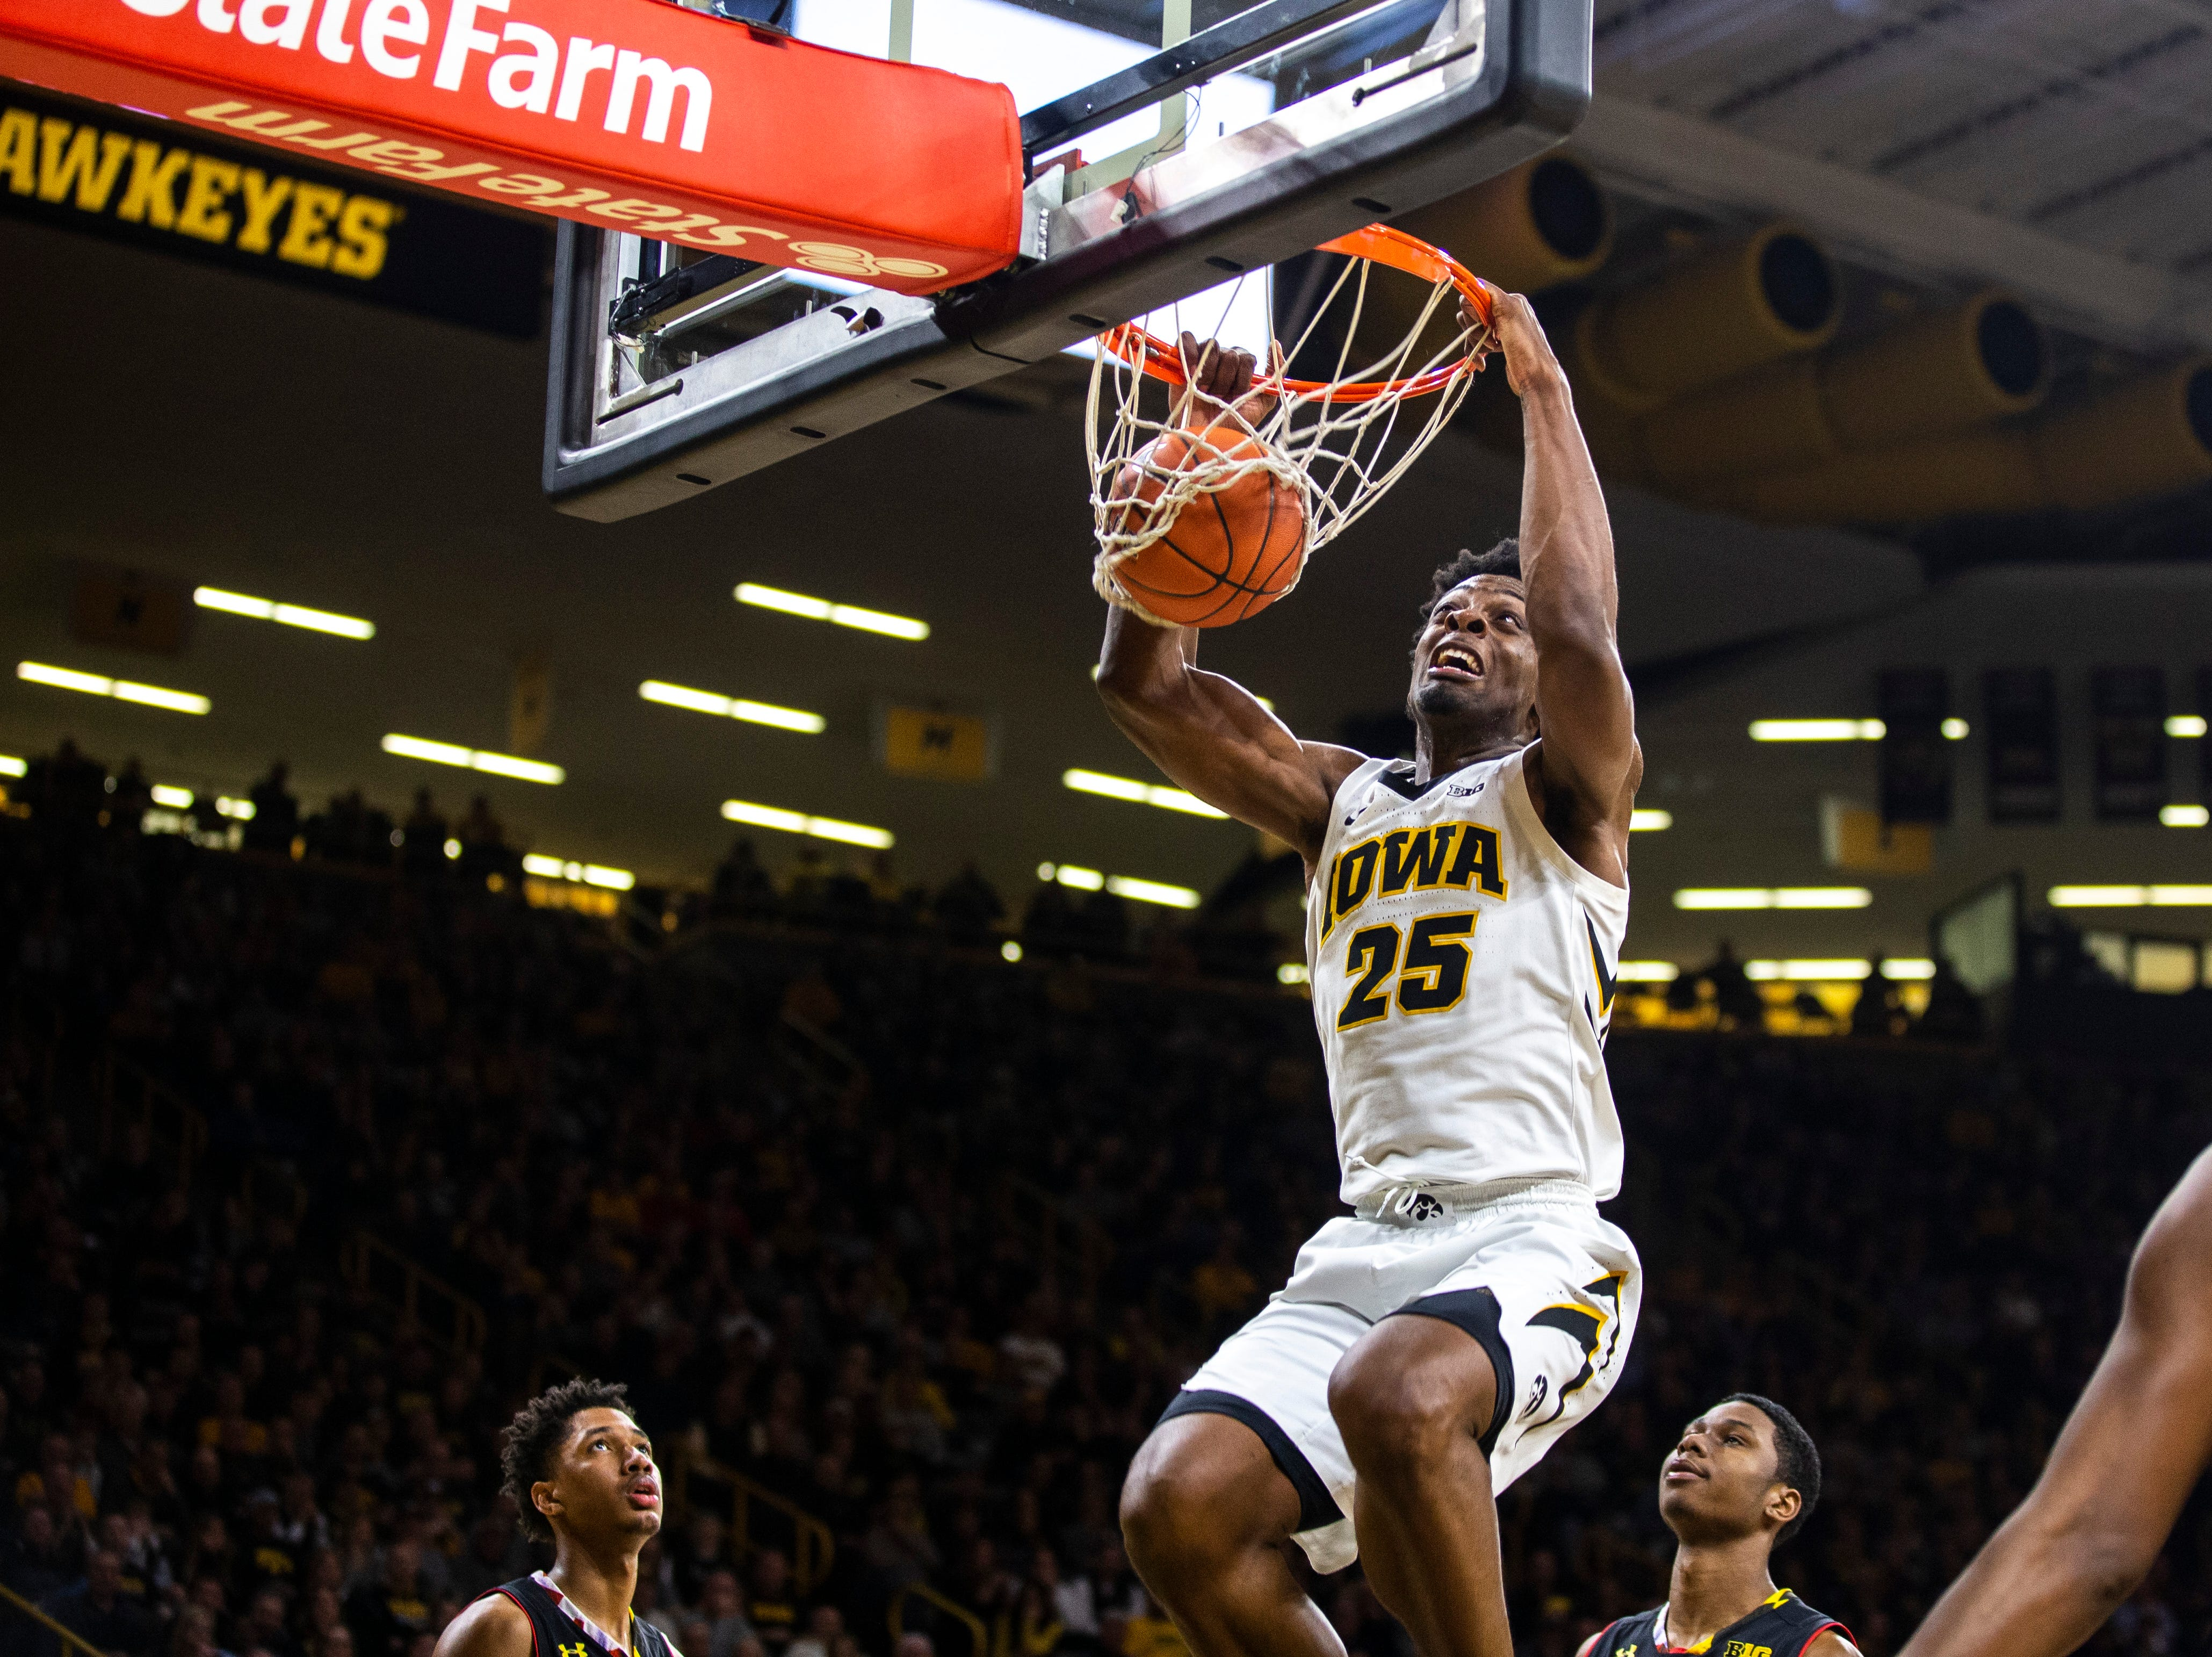 Iowa forward Tyler Cook (25) dunks during a NCAA Big Ten Conference men's basketball game on Tuesday, Feb. 19, 2019 at Carver-Hawkeye Arena in Iowa City, Iowa.